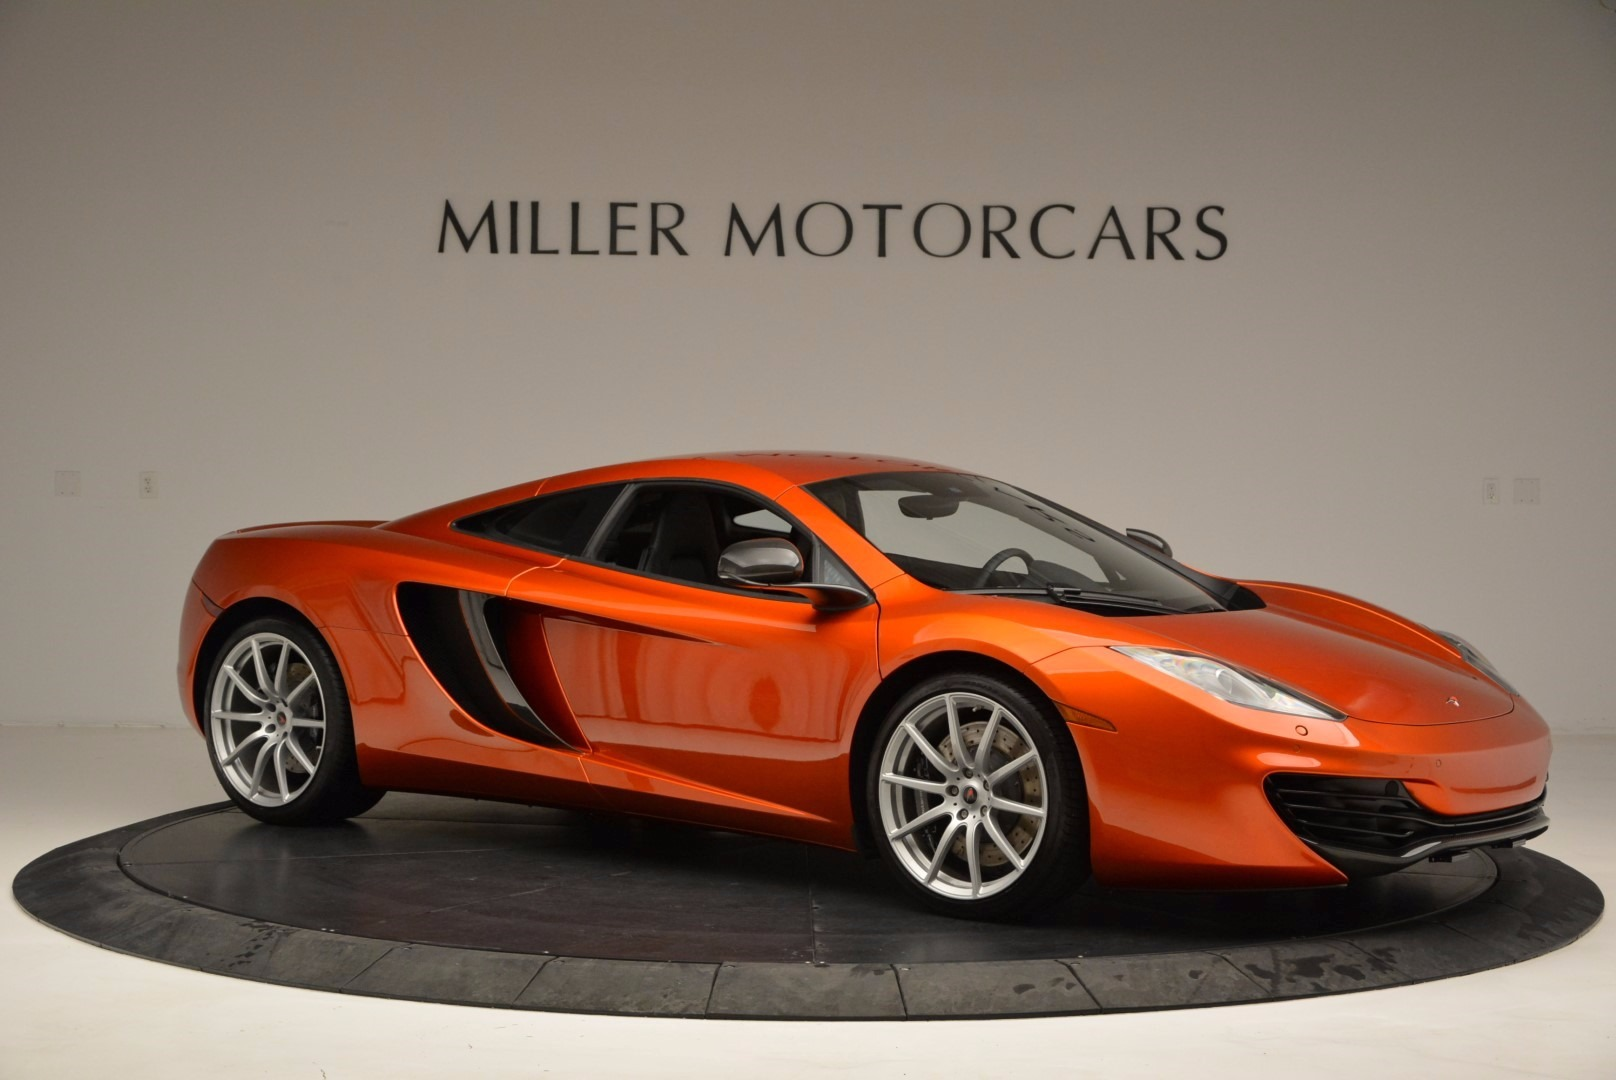 Used 2012 McLaren MP4-12C  For Sale In Greenwich, CT. Alfa Romeo of Greenwich, 3094 1035_p10